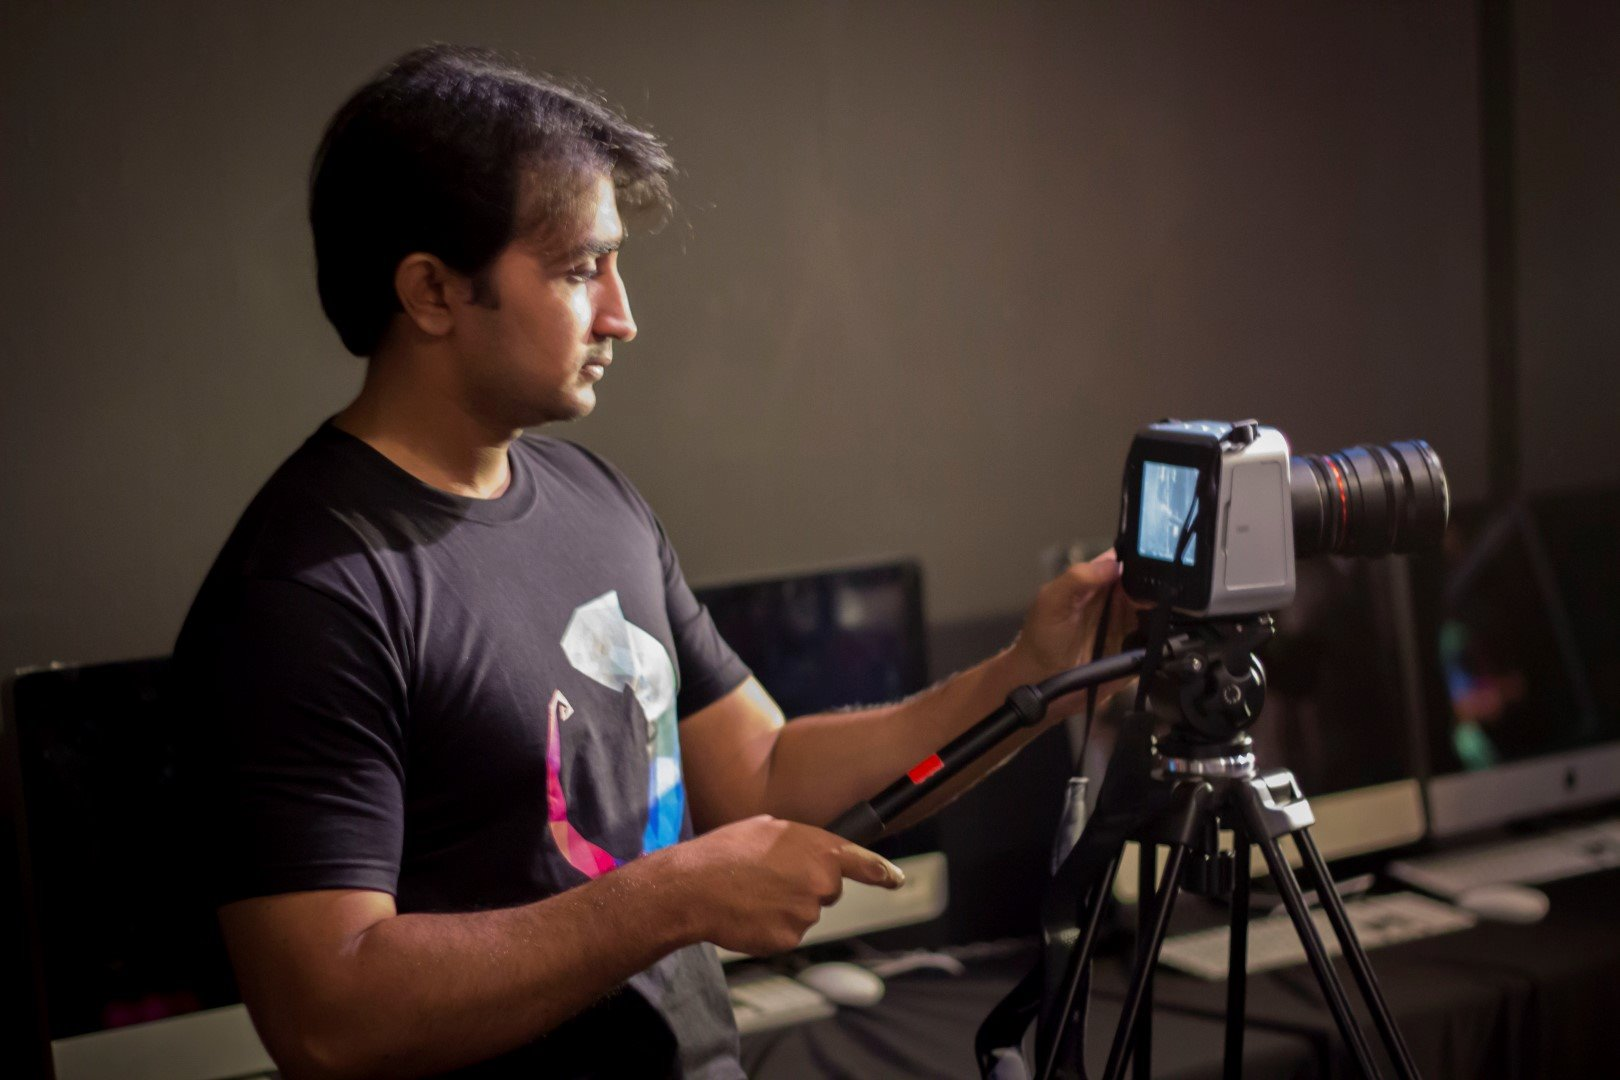 One of our videographers, Salman, documenting the festival